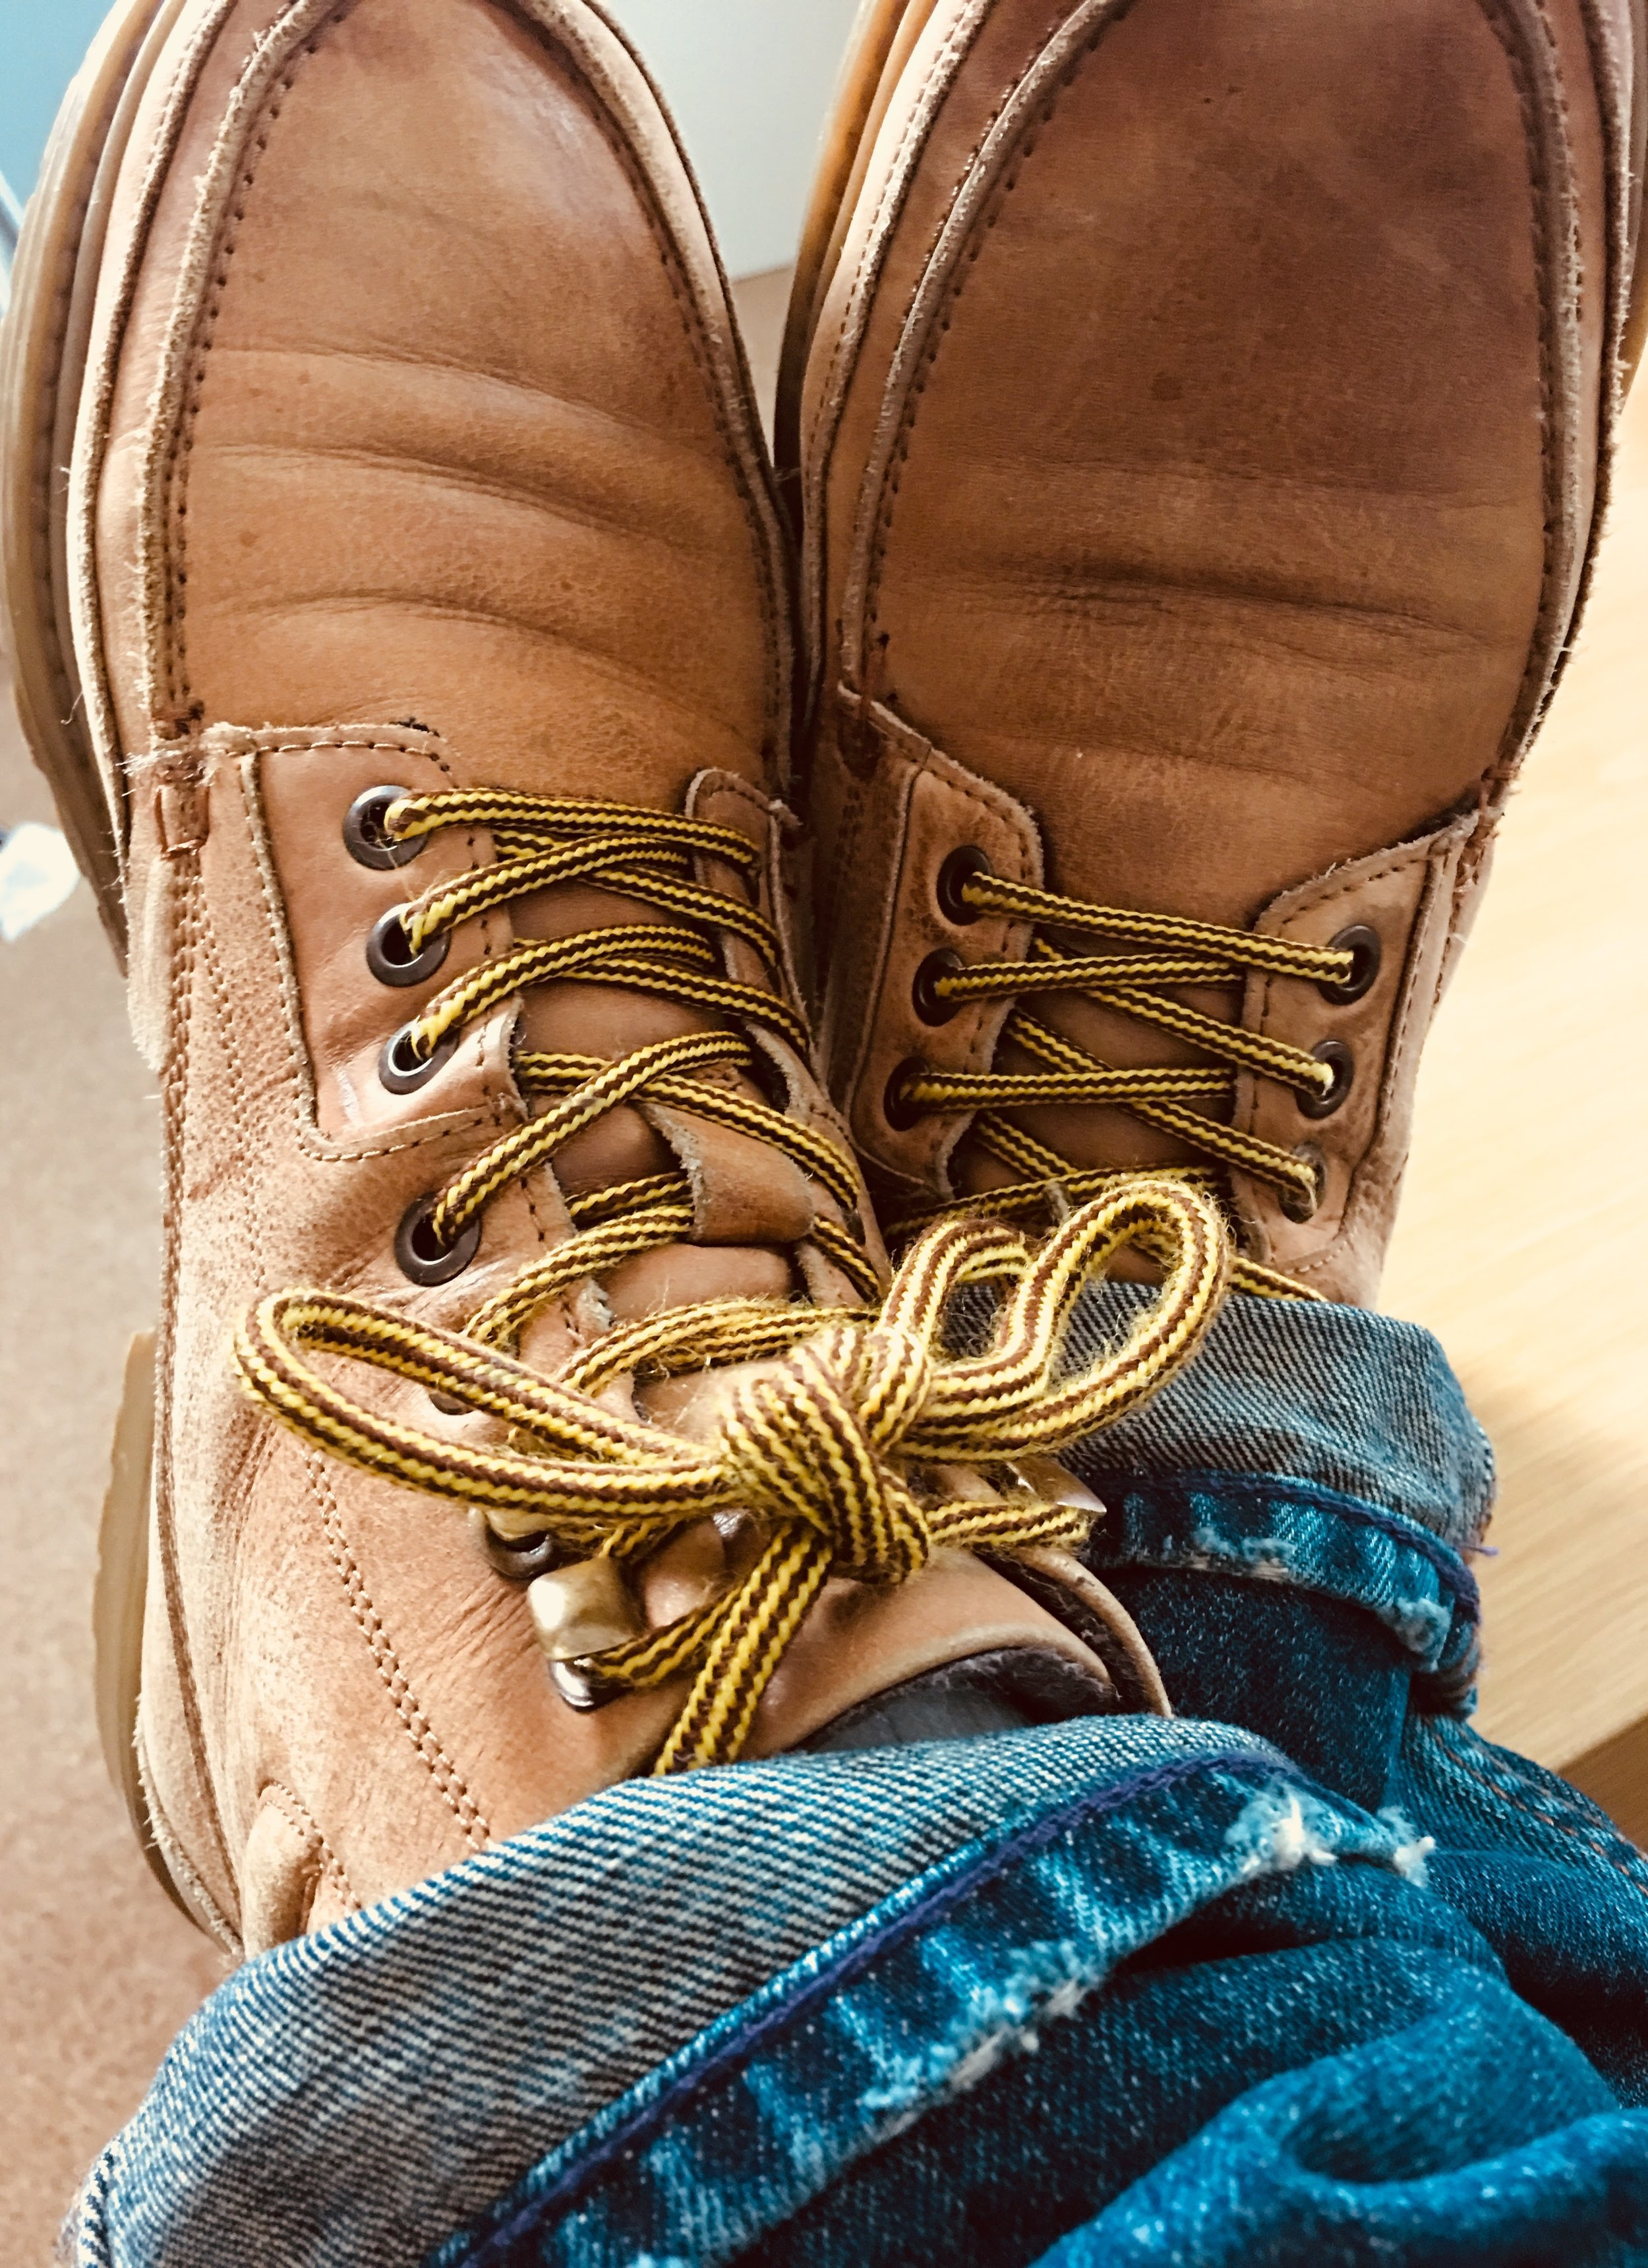 The Rigid Slim Jeans by White Stuff is great to wear with my favourite pair of Boots. I love Winter time!